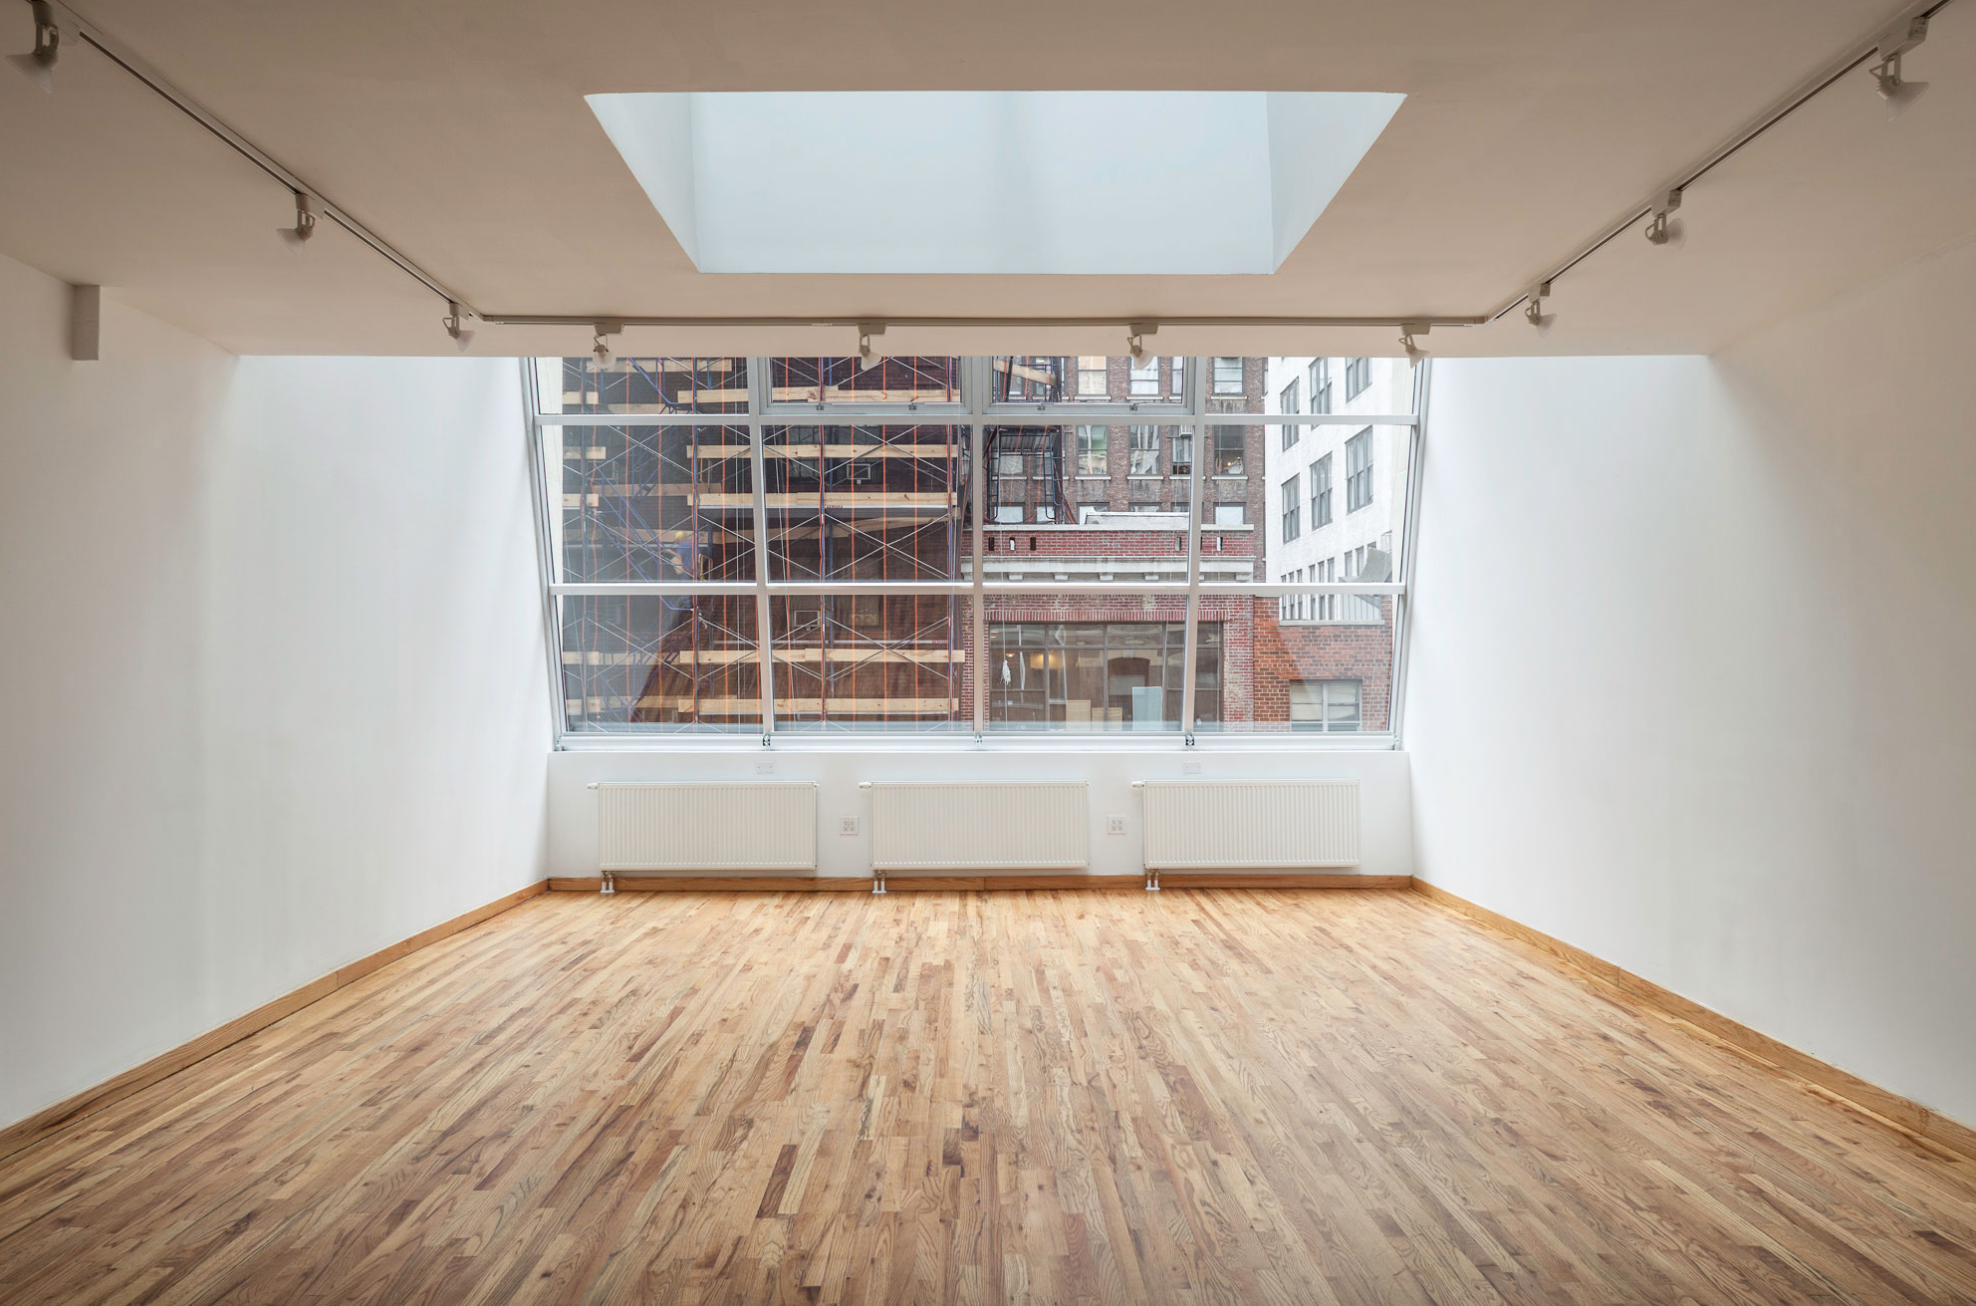 Highlight Studios located at 36 E 30th in Midtown Manhattan